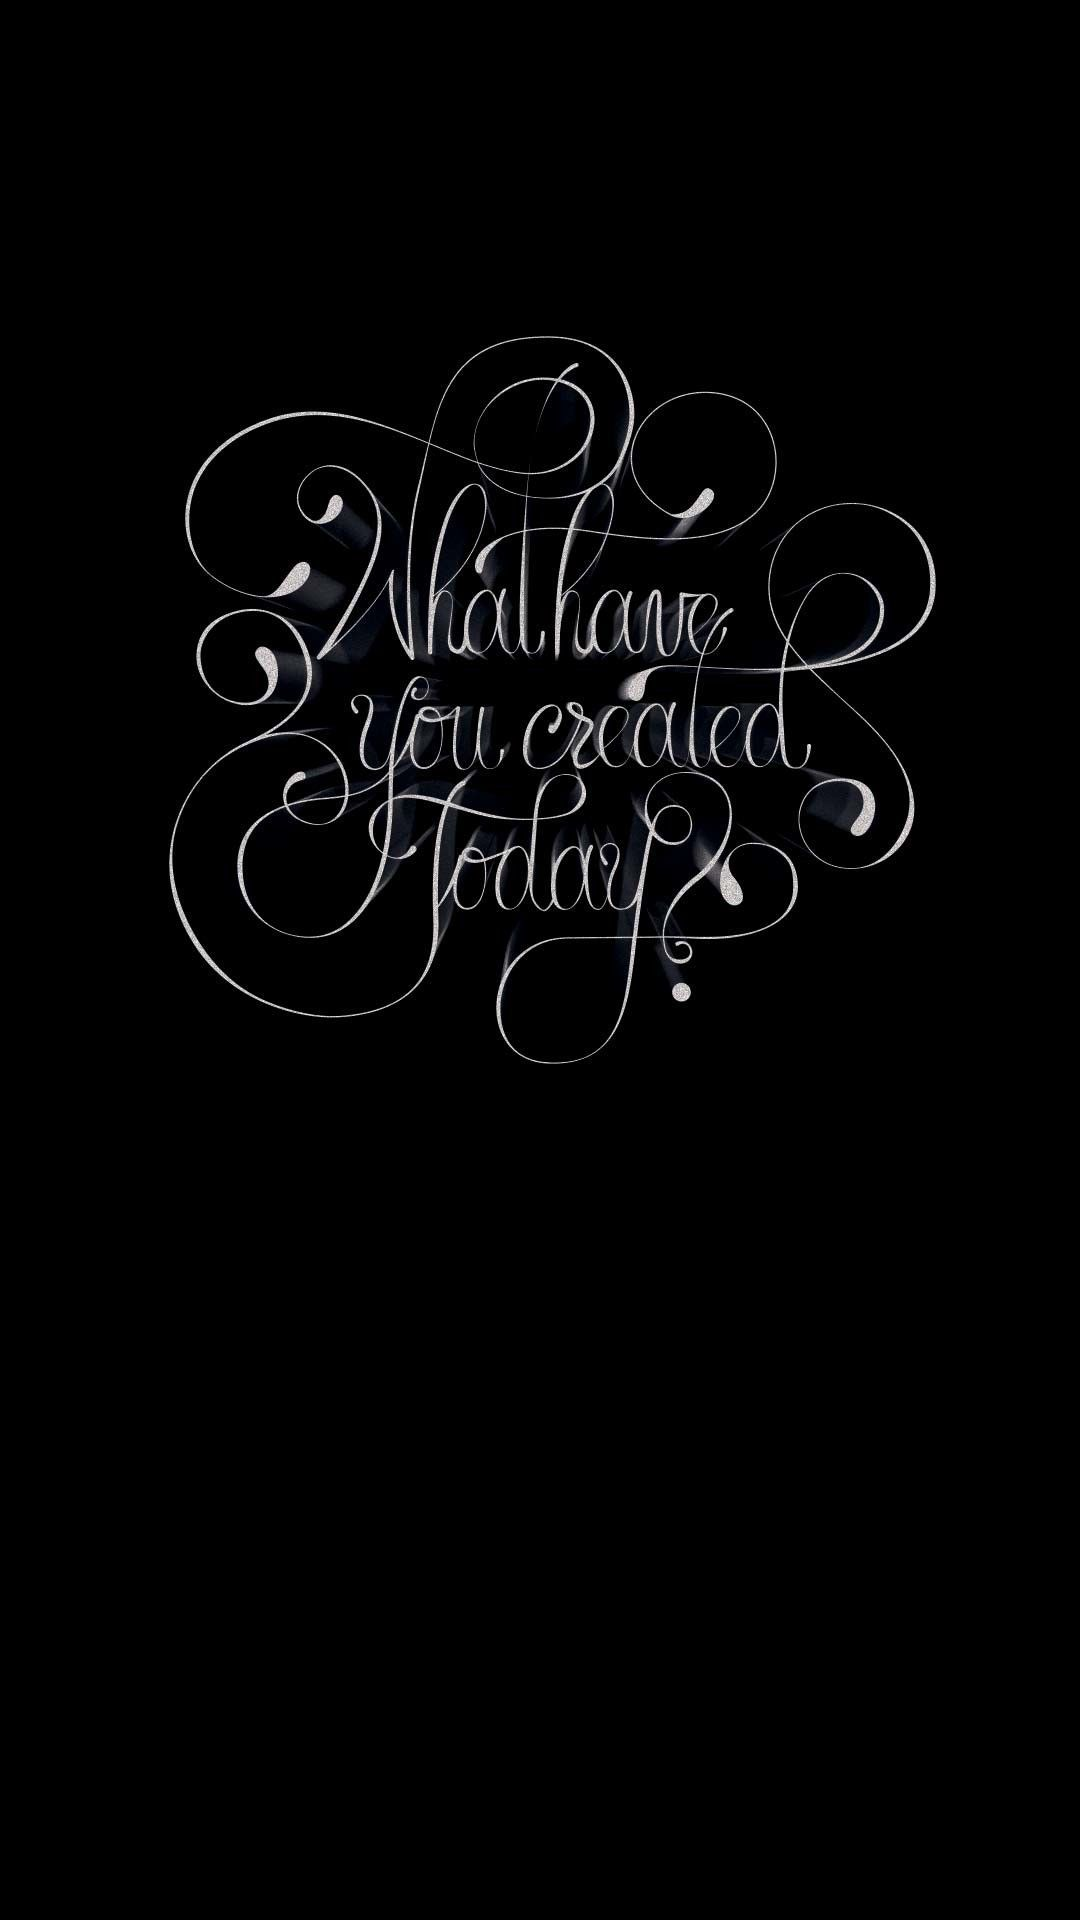 Awesome Dark Aesthetic iPhone Wallpapers - WallpaperAccess